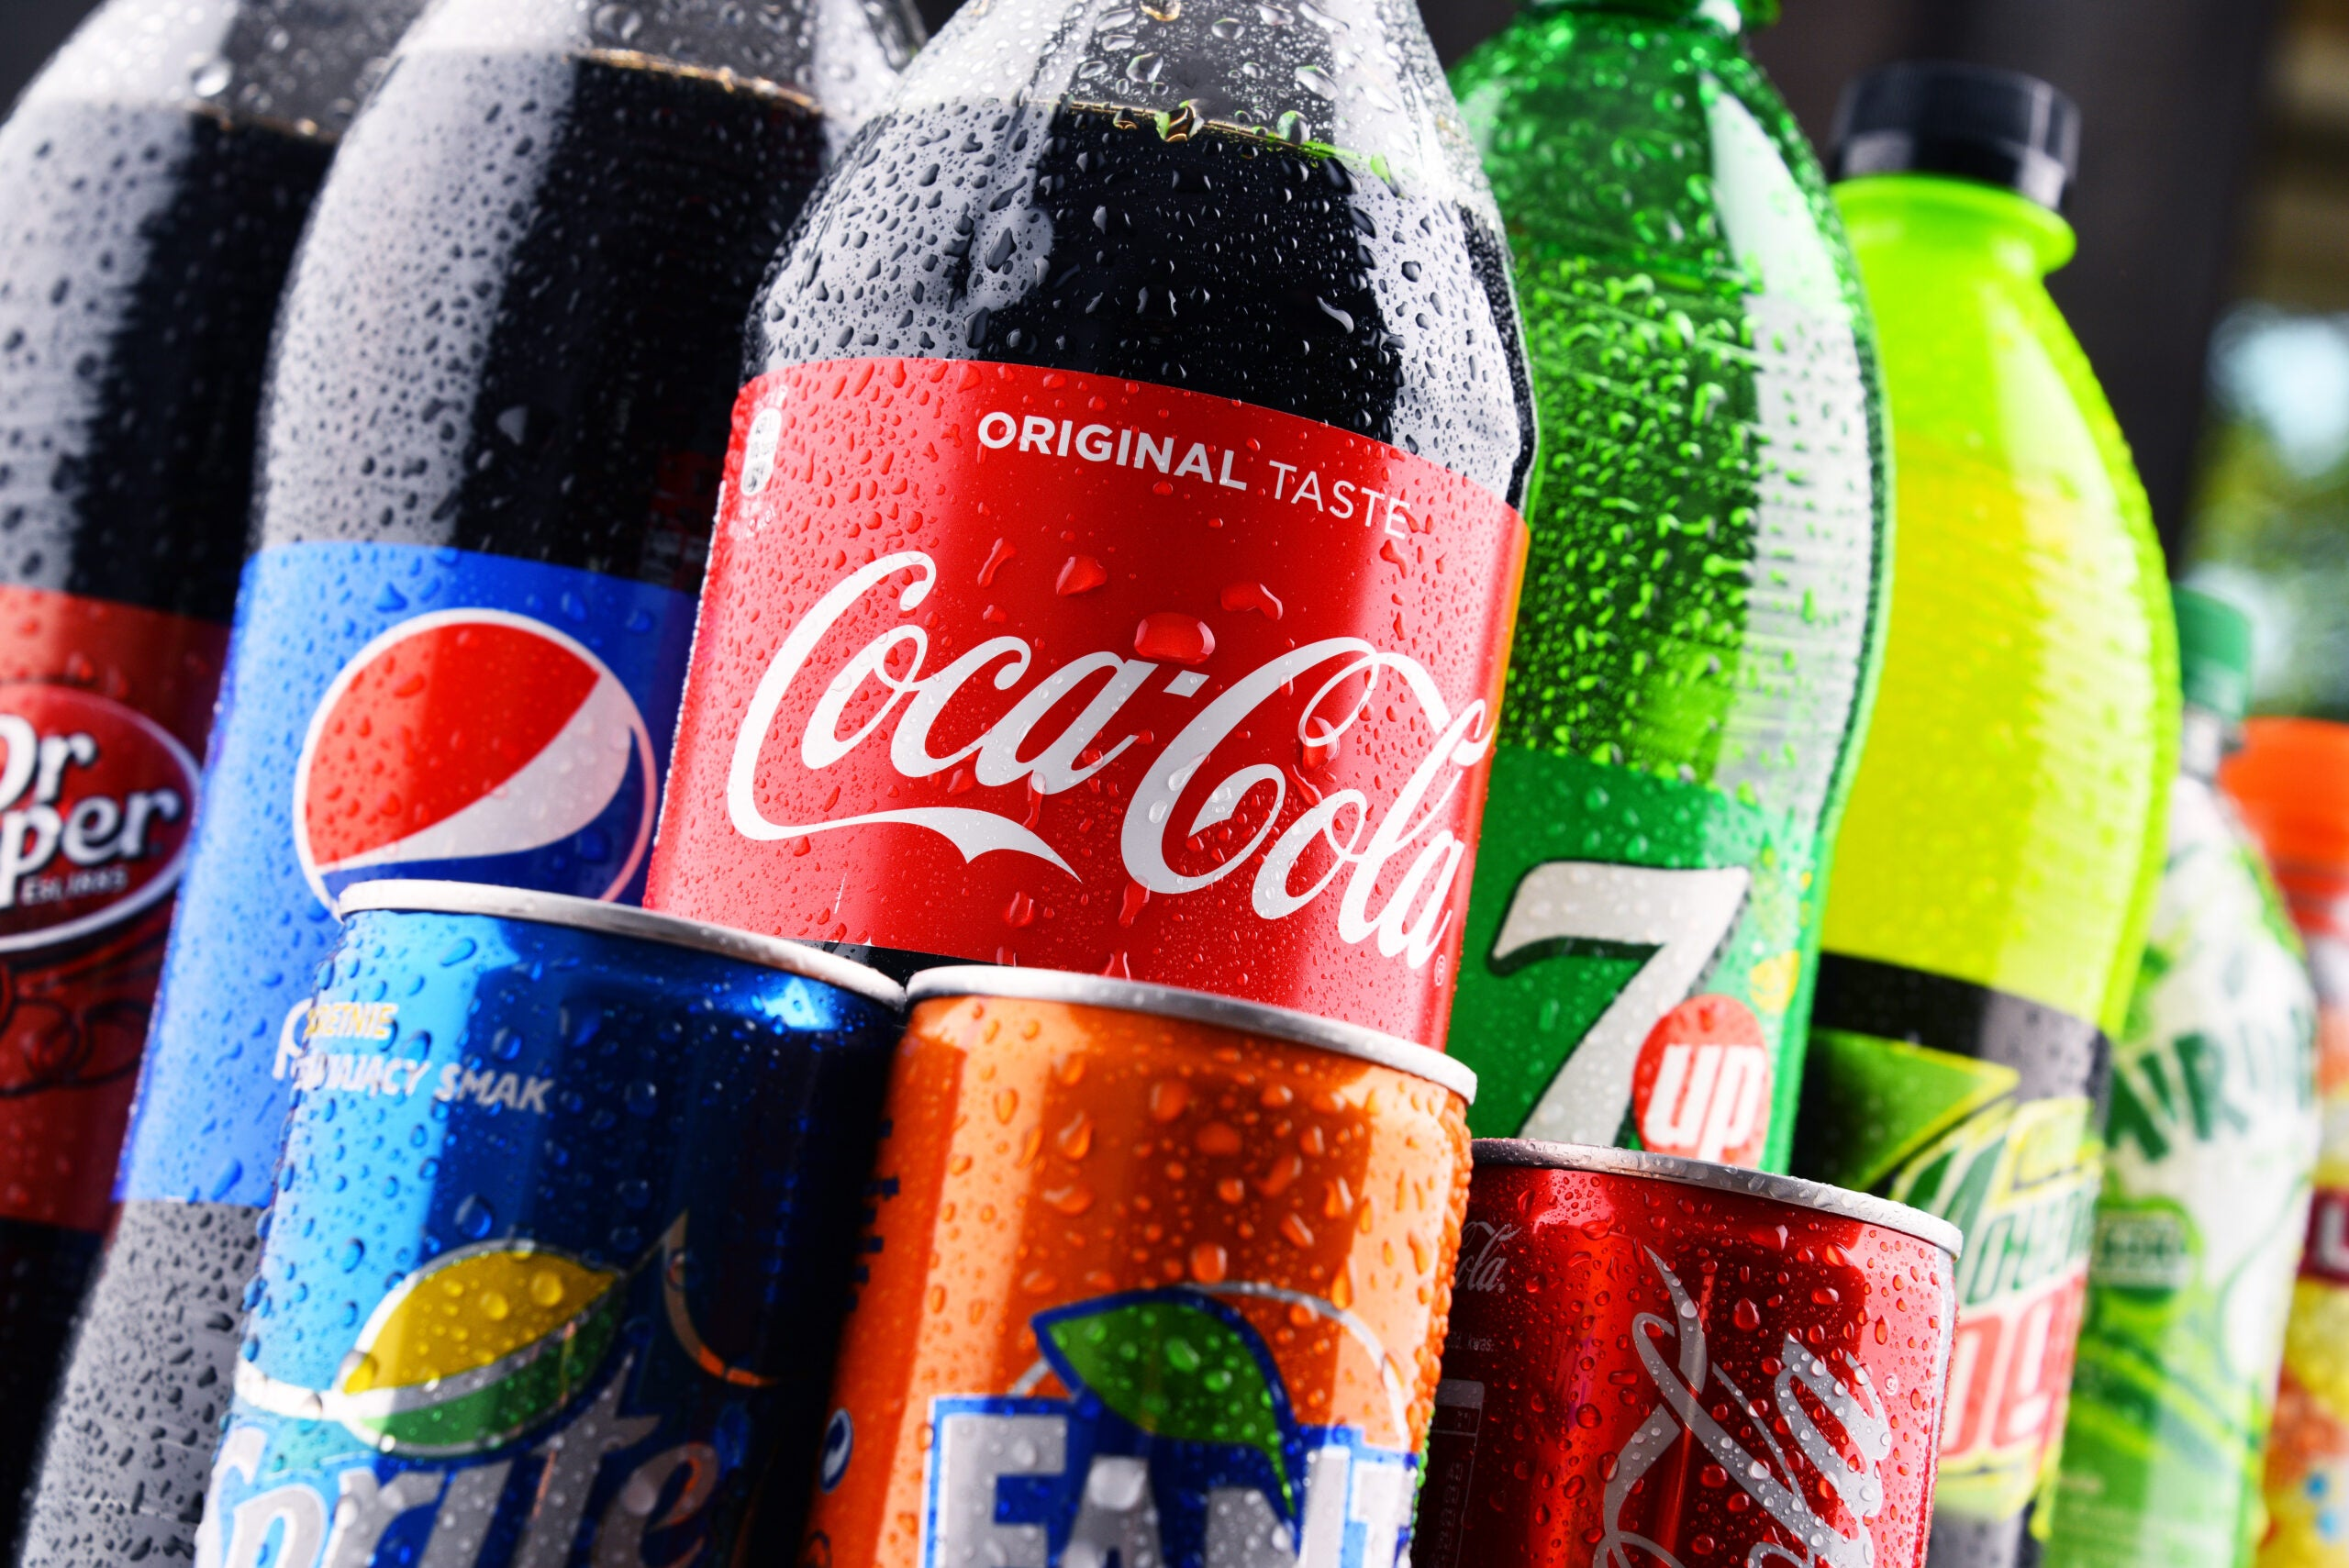 Taxing soda would help make kids healthier